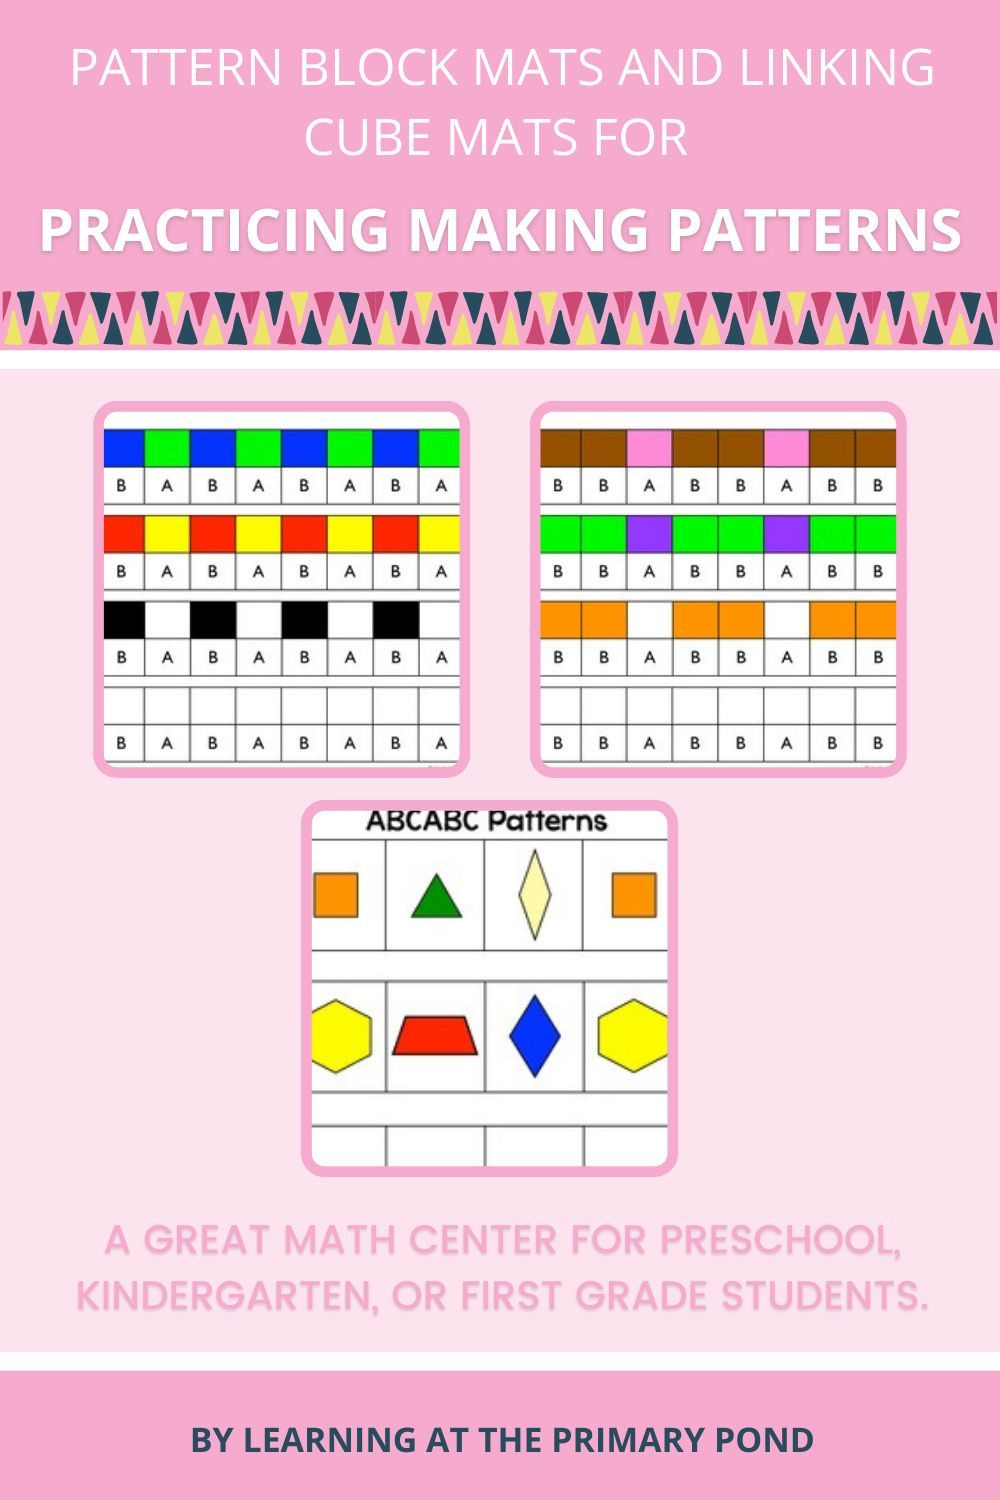 Pattern Block Mats And Linking Cube Mats For Practicing Making Patterns In 2021 Pattern Blocks First Grade Math Abc Patterns [ 1500 x 1000 Pixel ]